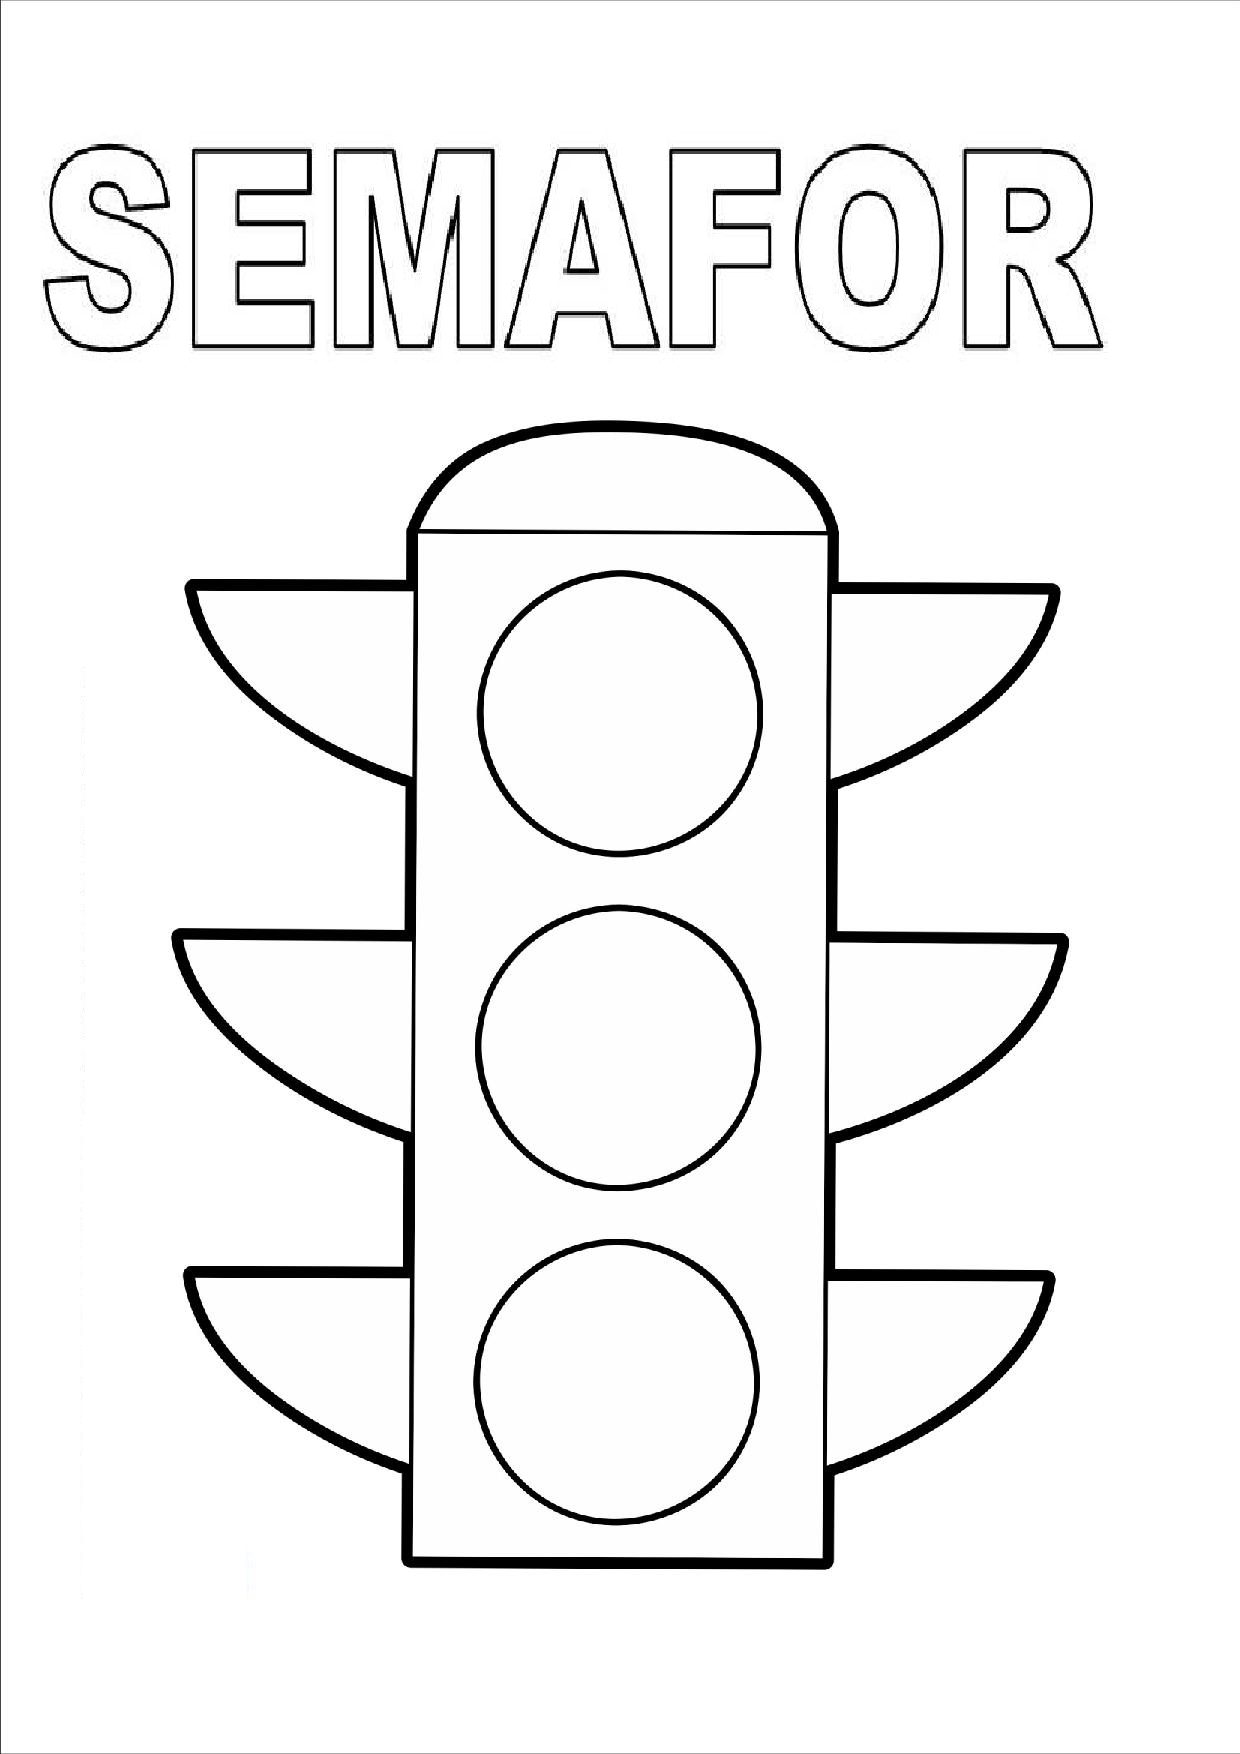 Semafor Traffic Light Coloring Pages Stop Light